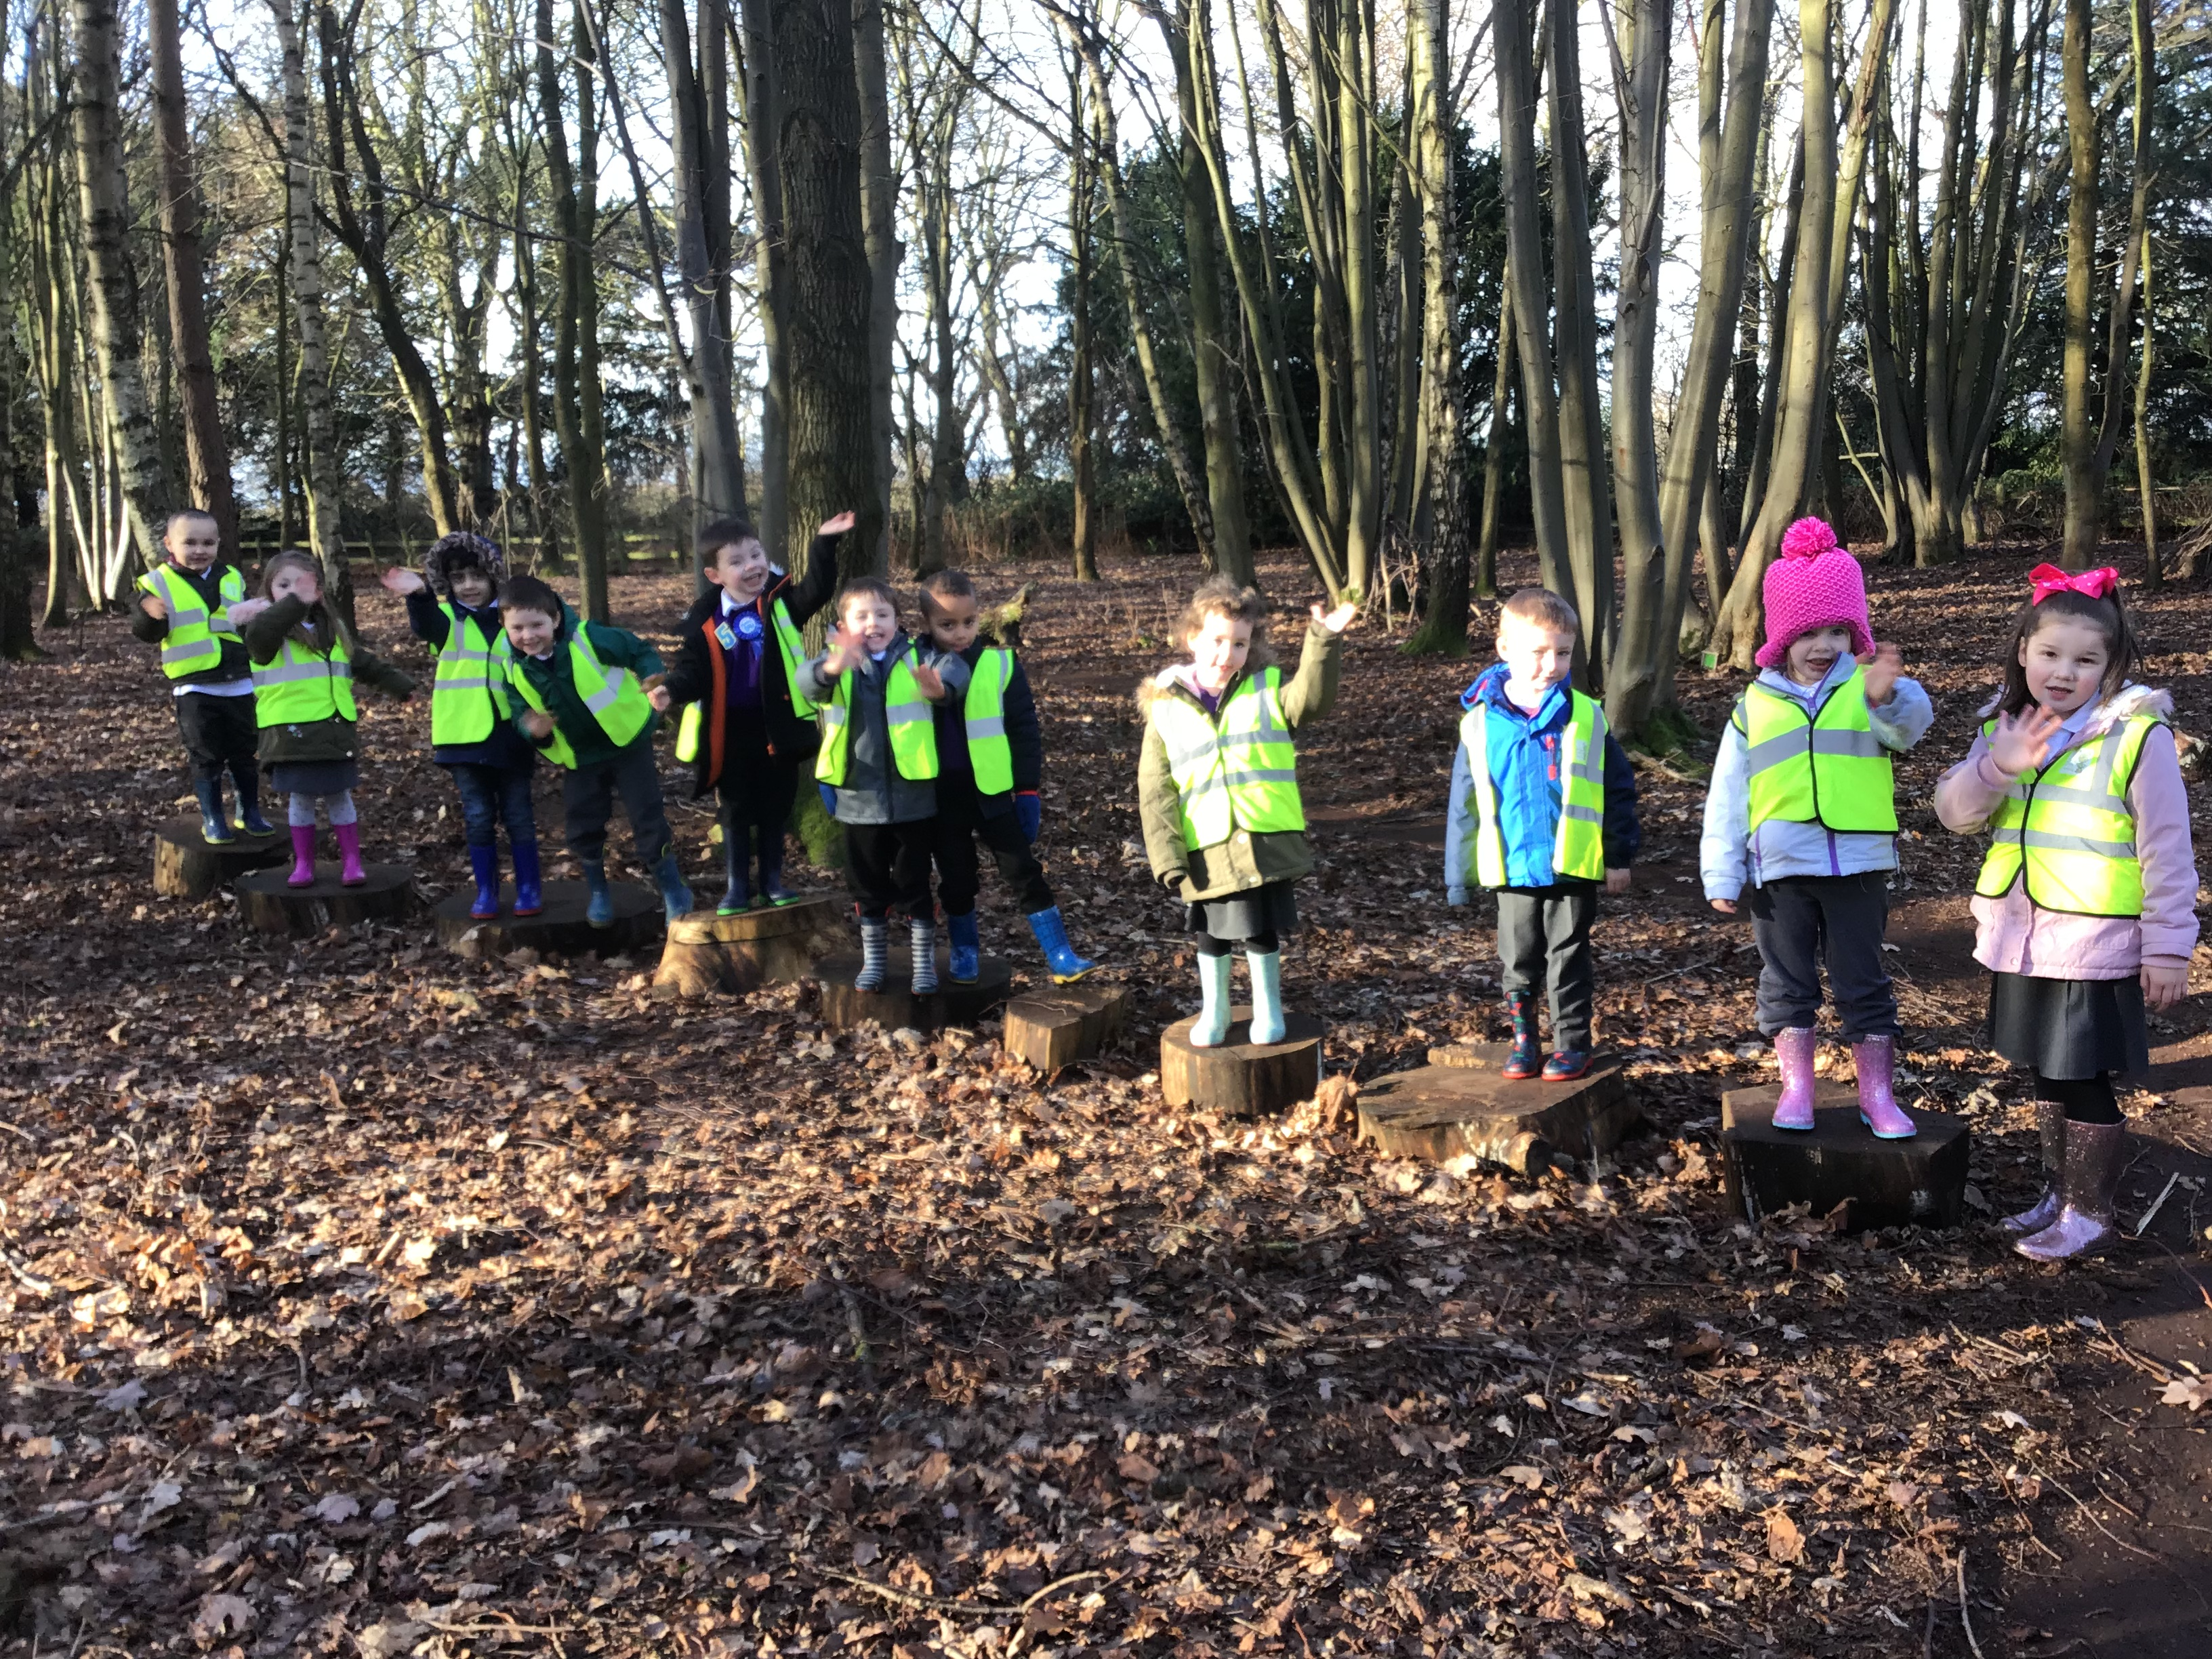 Reception Class visit to Beacon Park, Lichfield